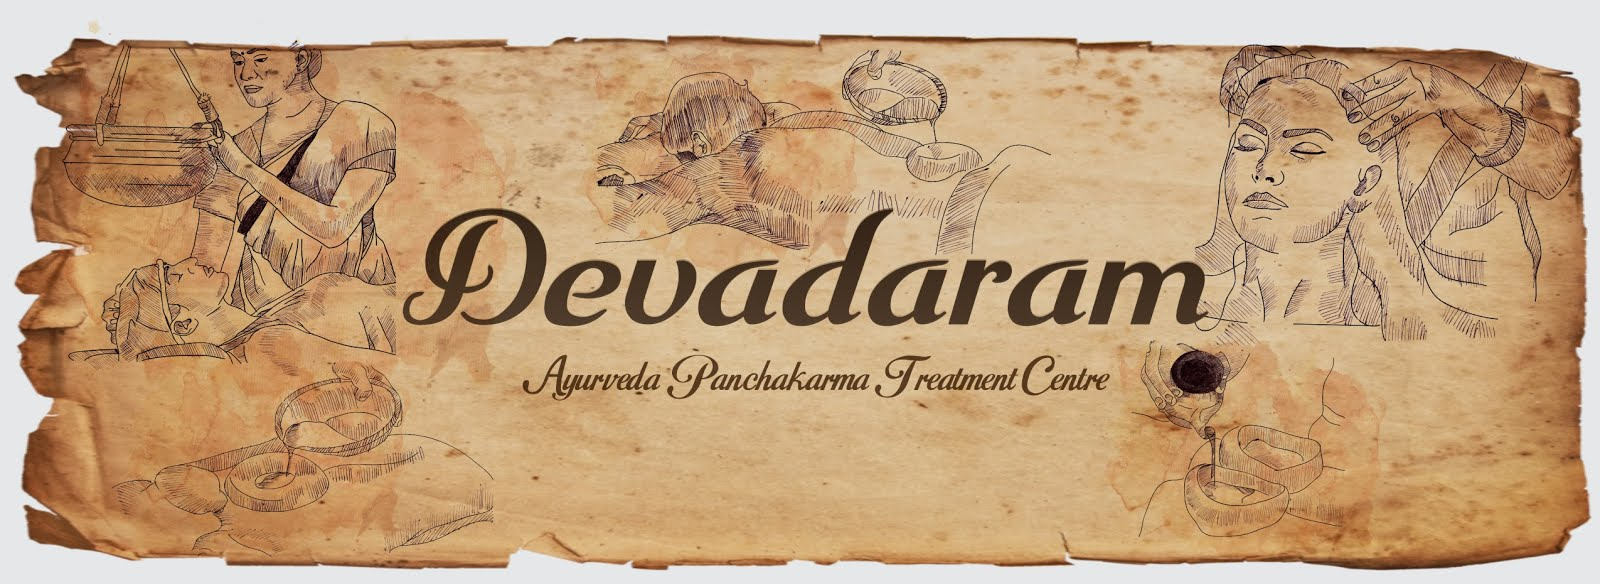 Devadaram | Ayurveda Panchakarma Treatment Centre